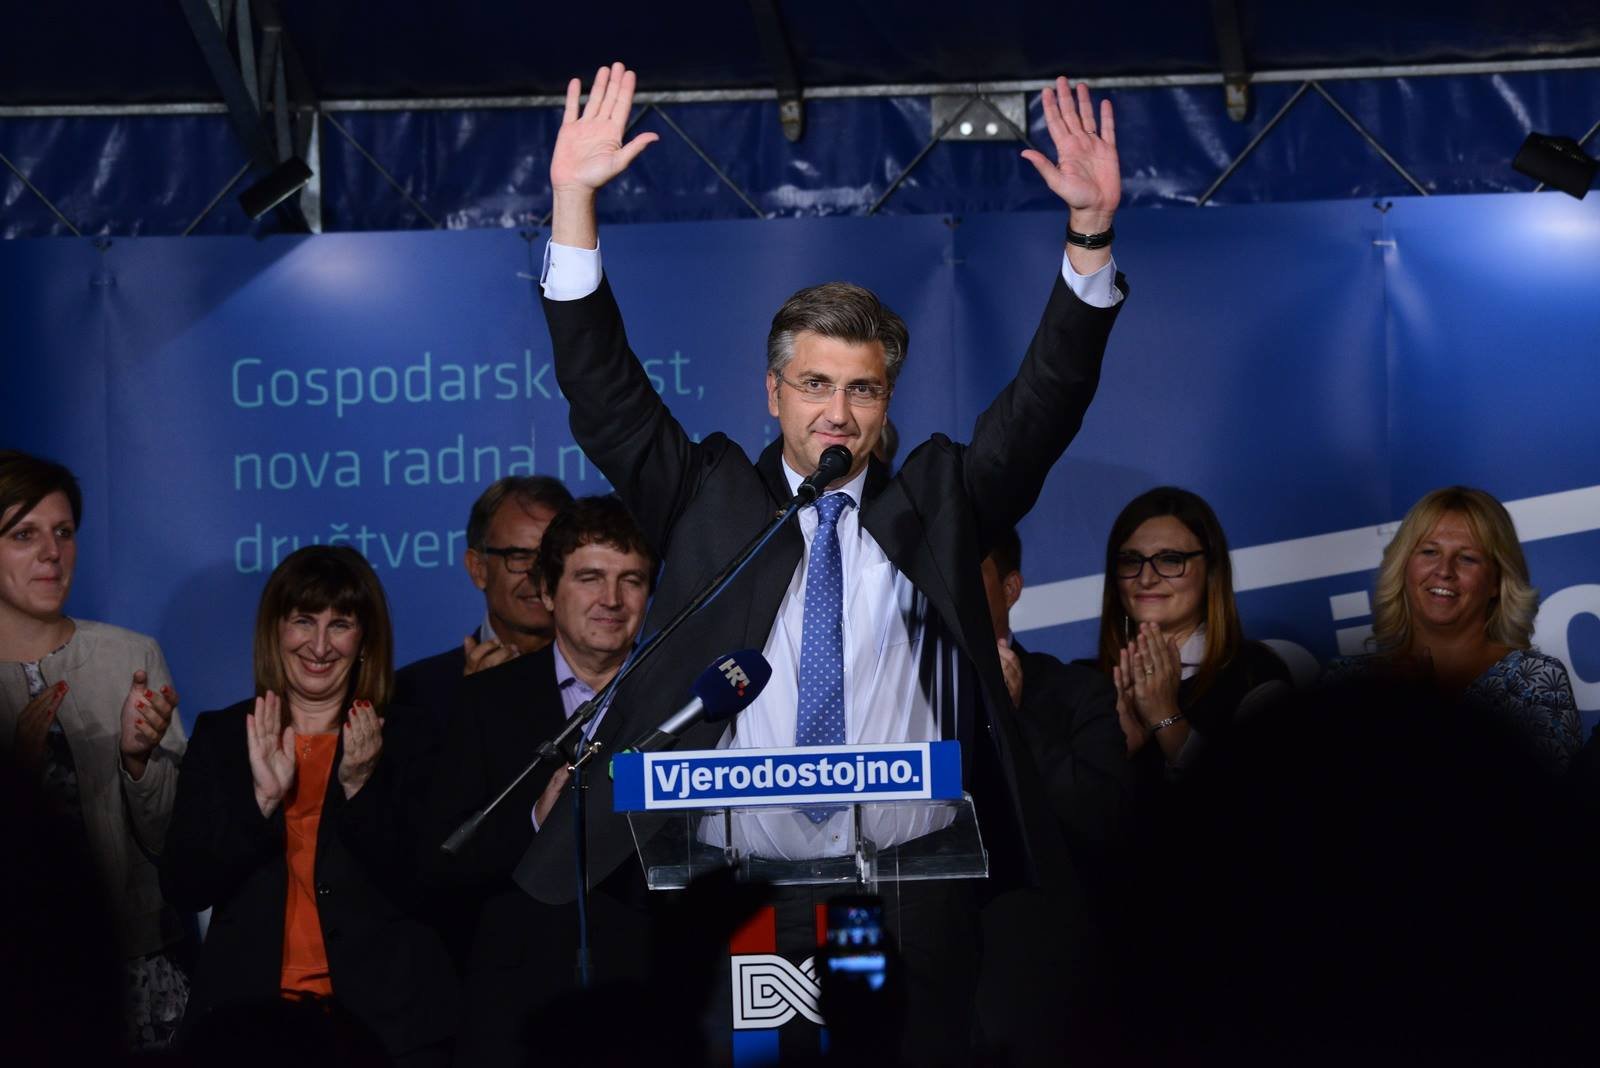 Andrej Plenković, a former diplomat, is likely to become Croatia's next prime minister. (Facebook)